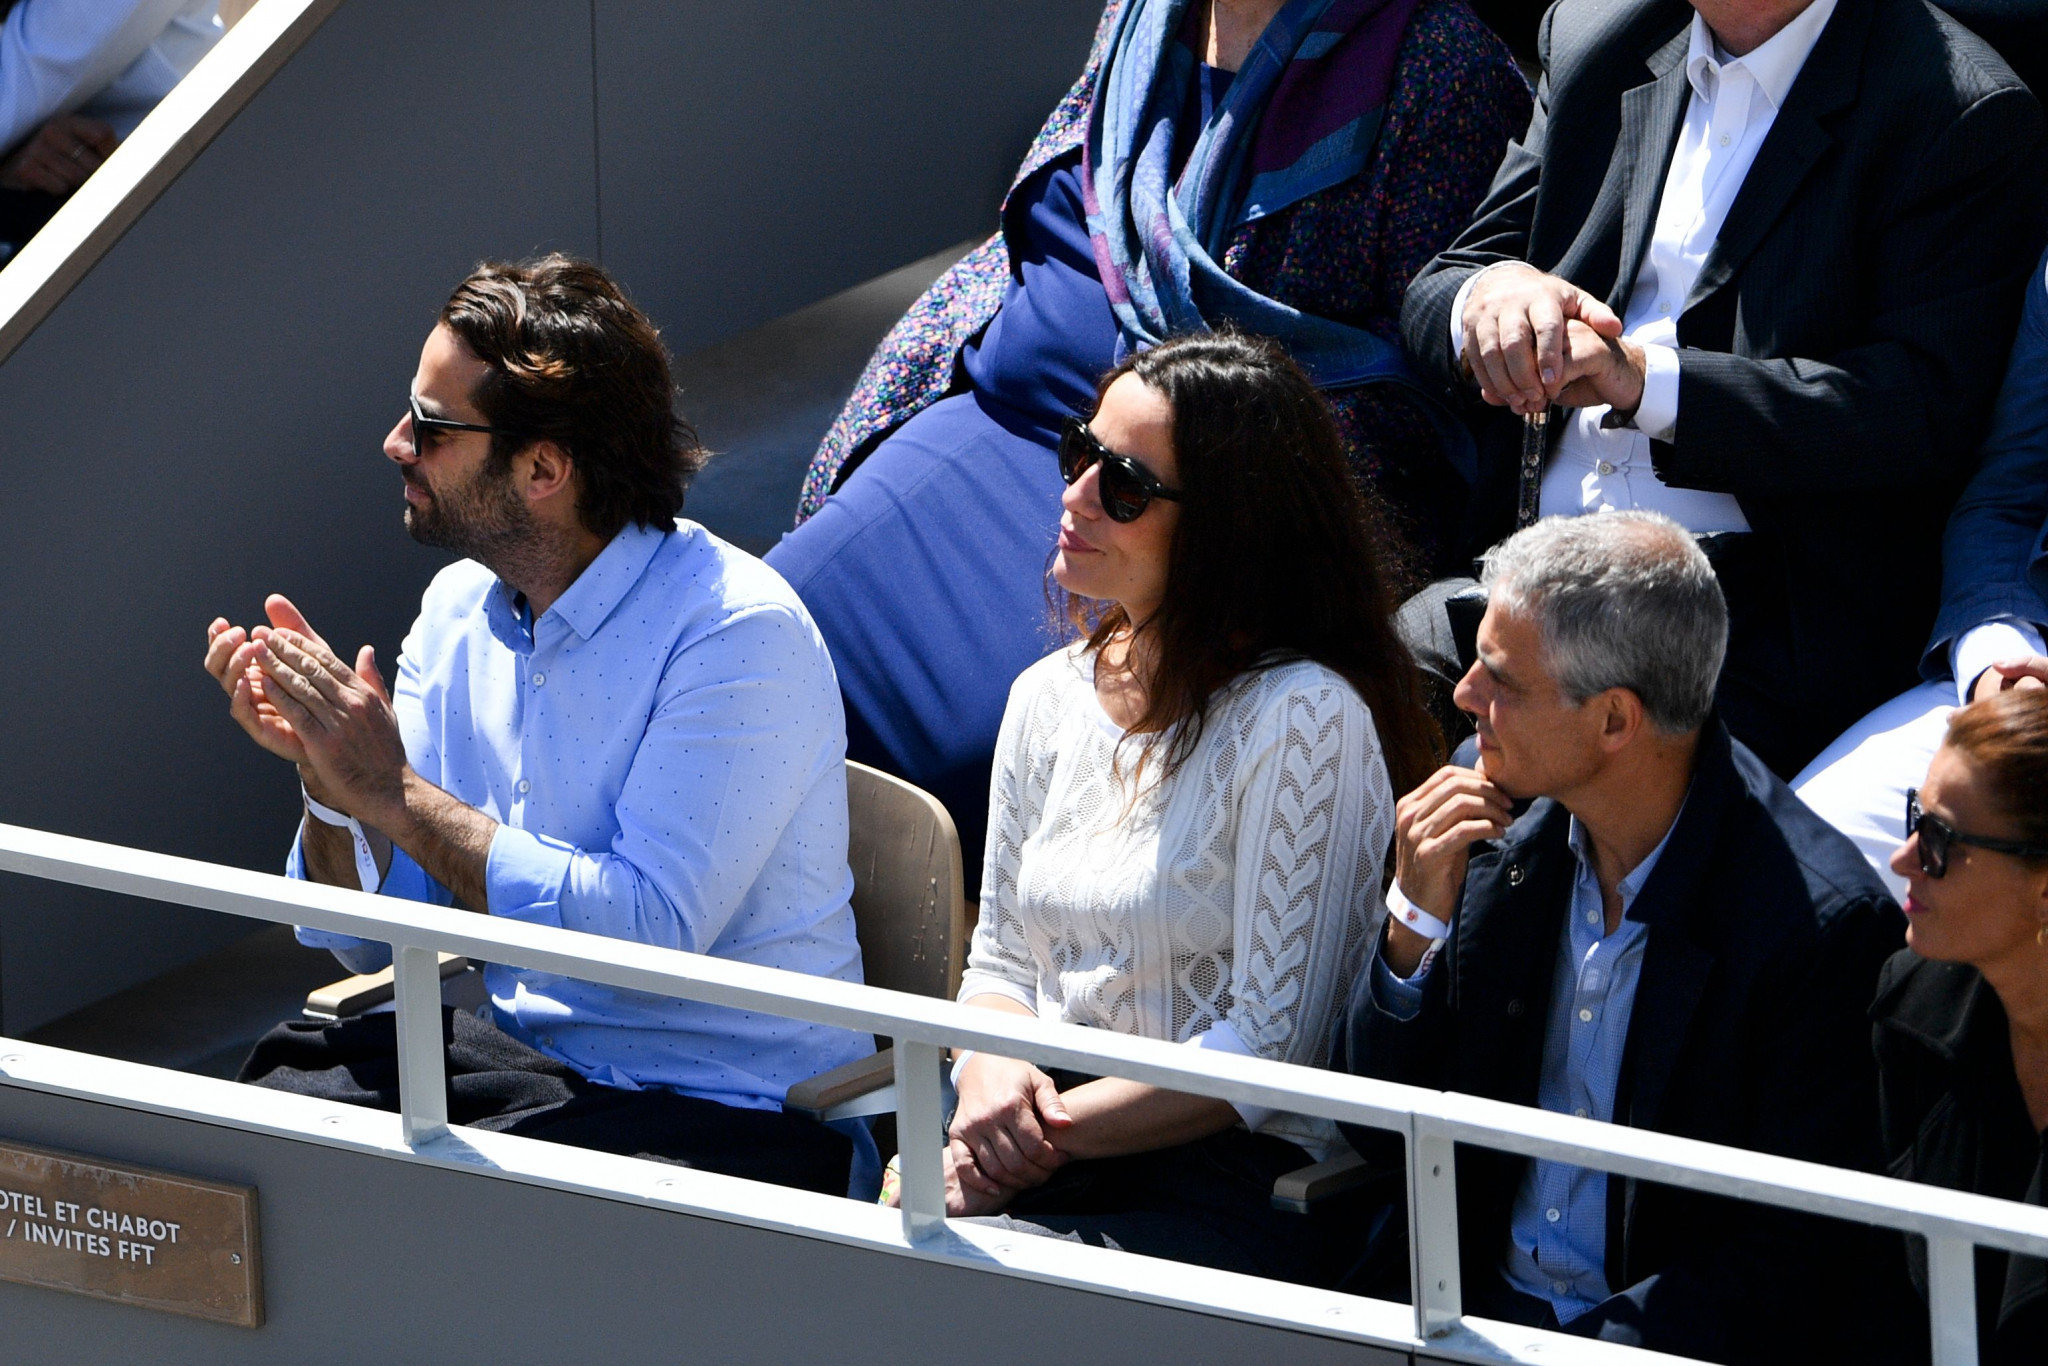 French actress Zoe Felix, centre, enjoys the men's French Open semi-final between Djokovic and Thiem ©Getty Images